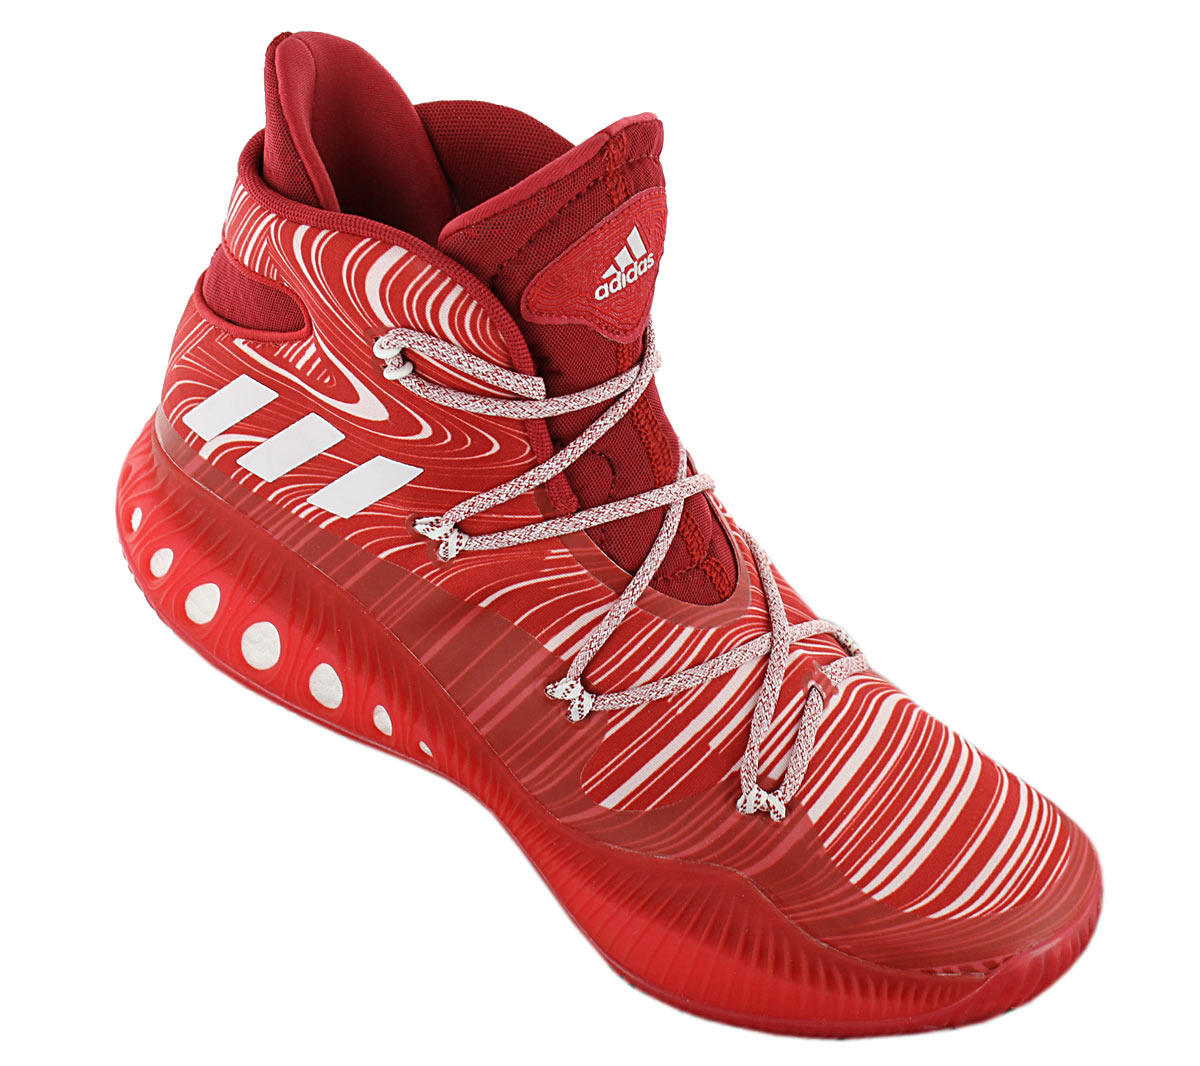 Details about Adidas Crazy Explosive Boost Men's Basketball Shoes B42420 Red Sports Shoes New